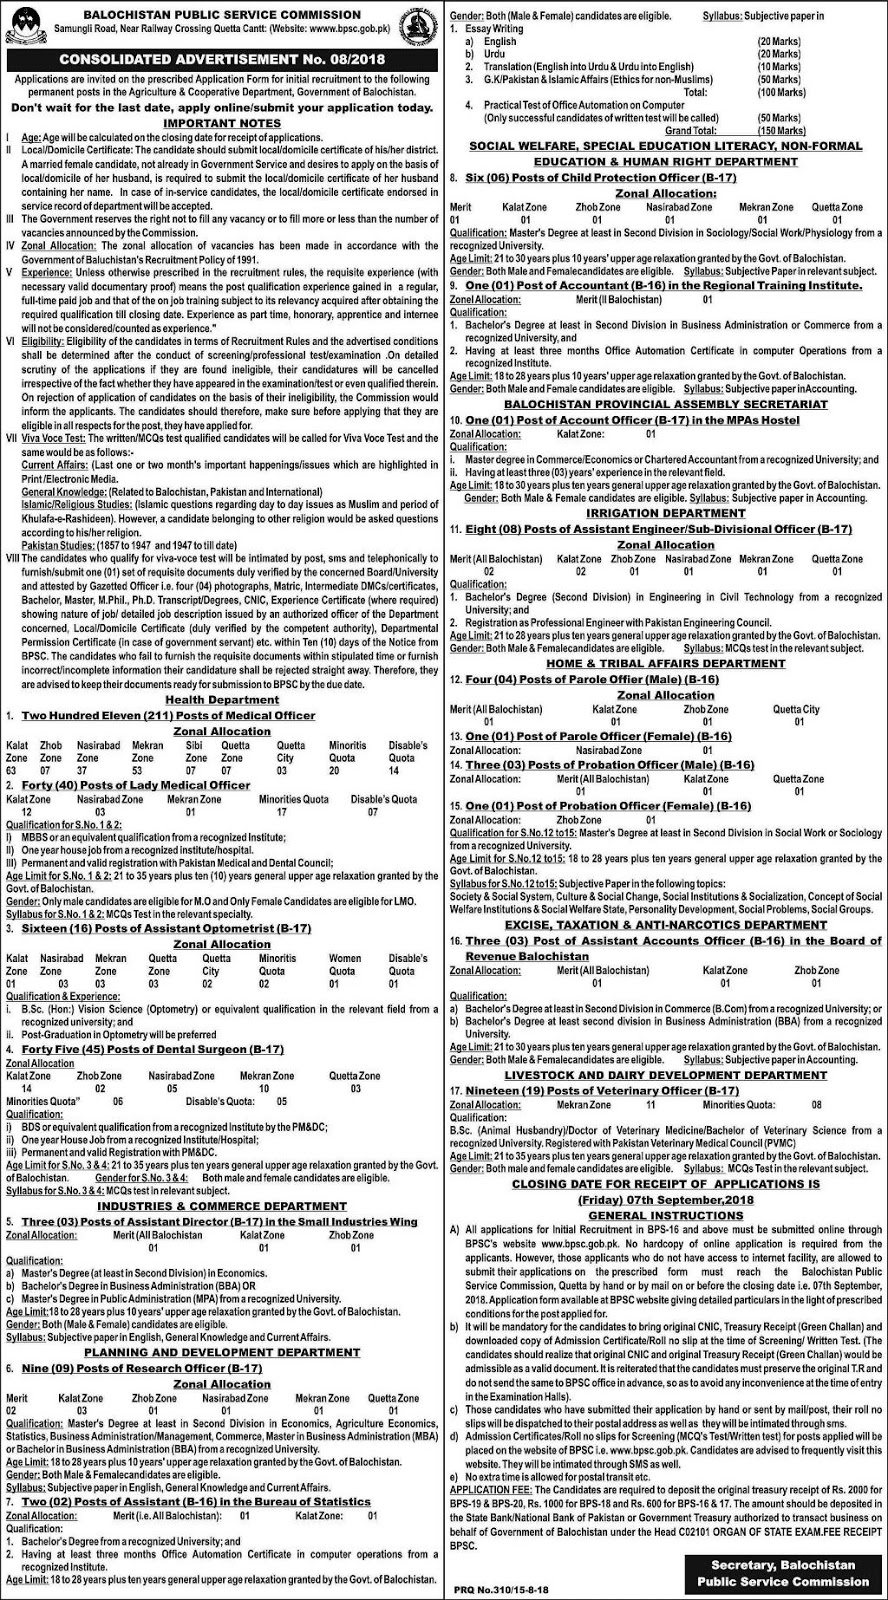 Latest Vacancies in BPSC Balochistan Public Service Commission August 2018